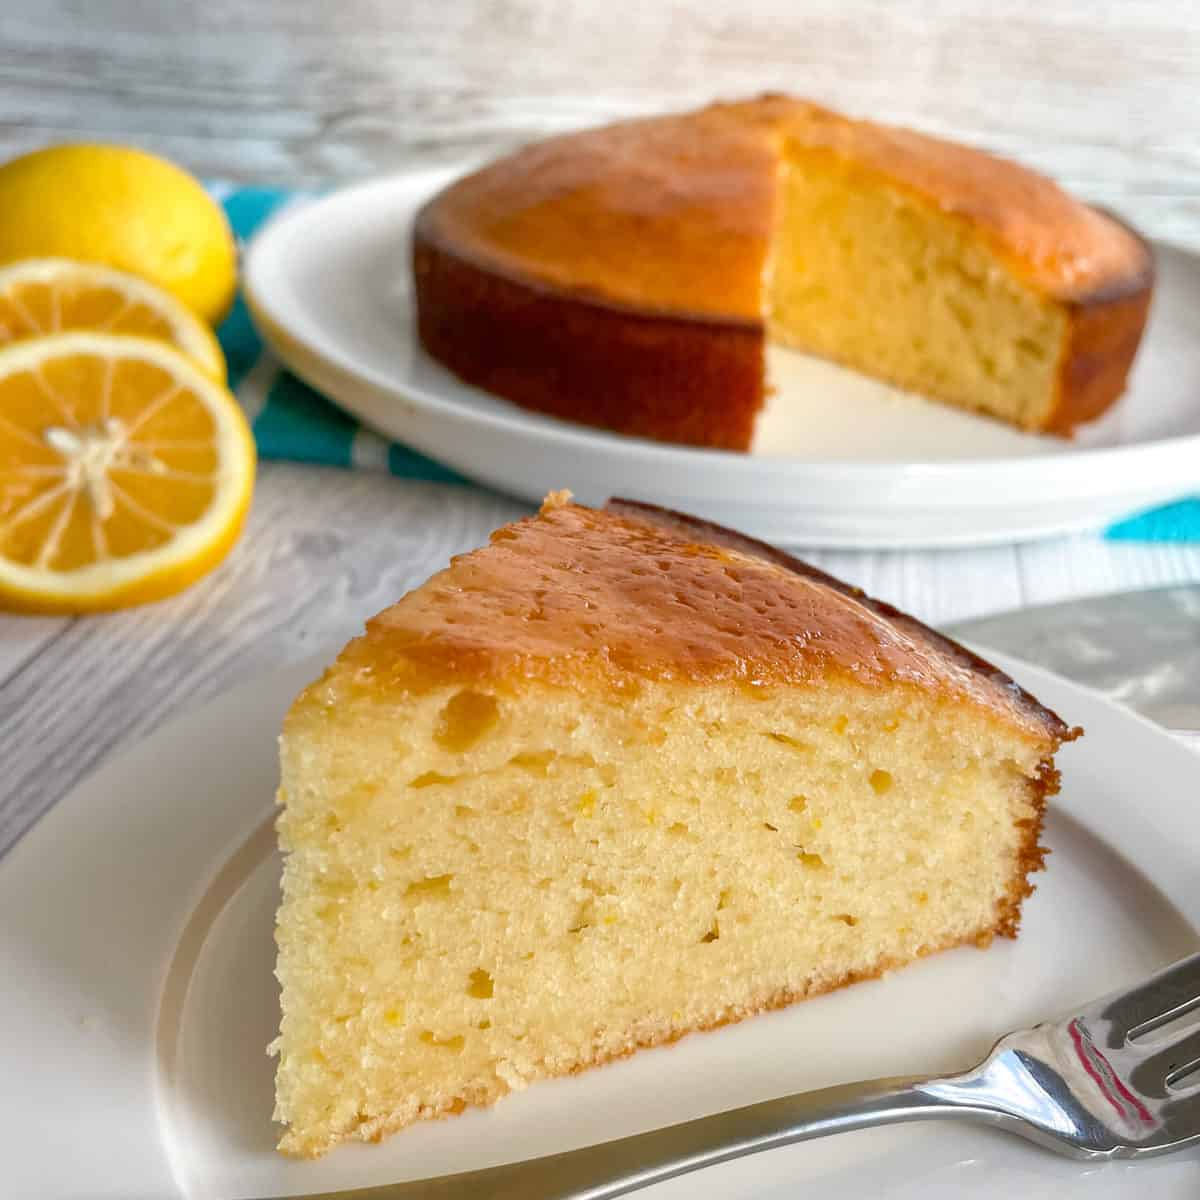 Slice of lemon syrup cake on a white plate, with the rest of the cake in the background